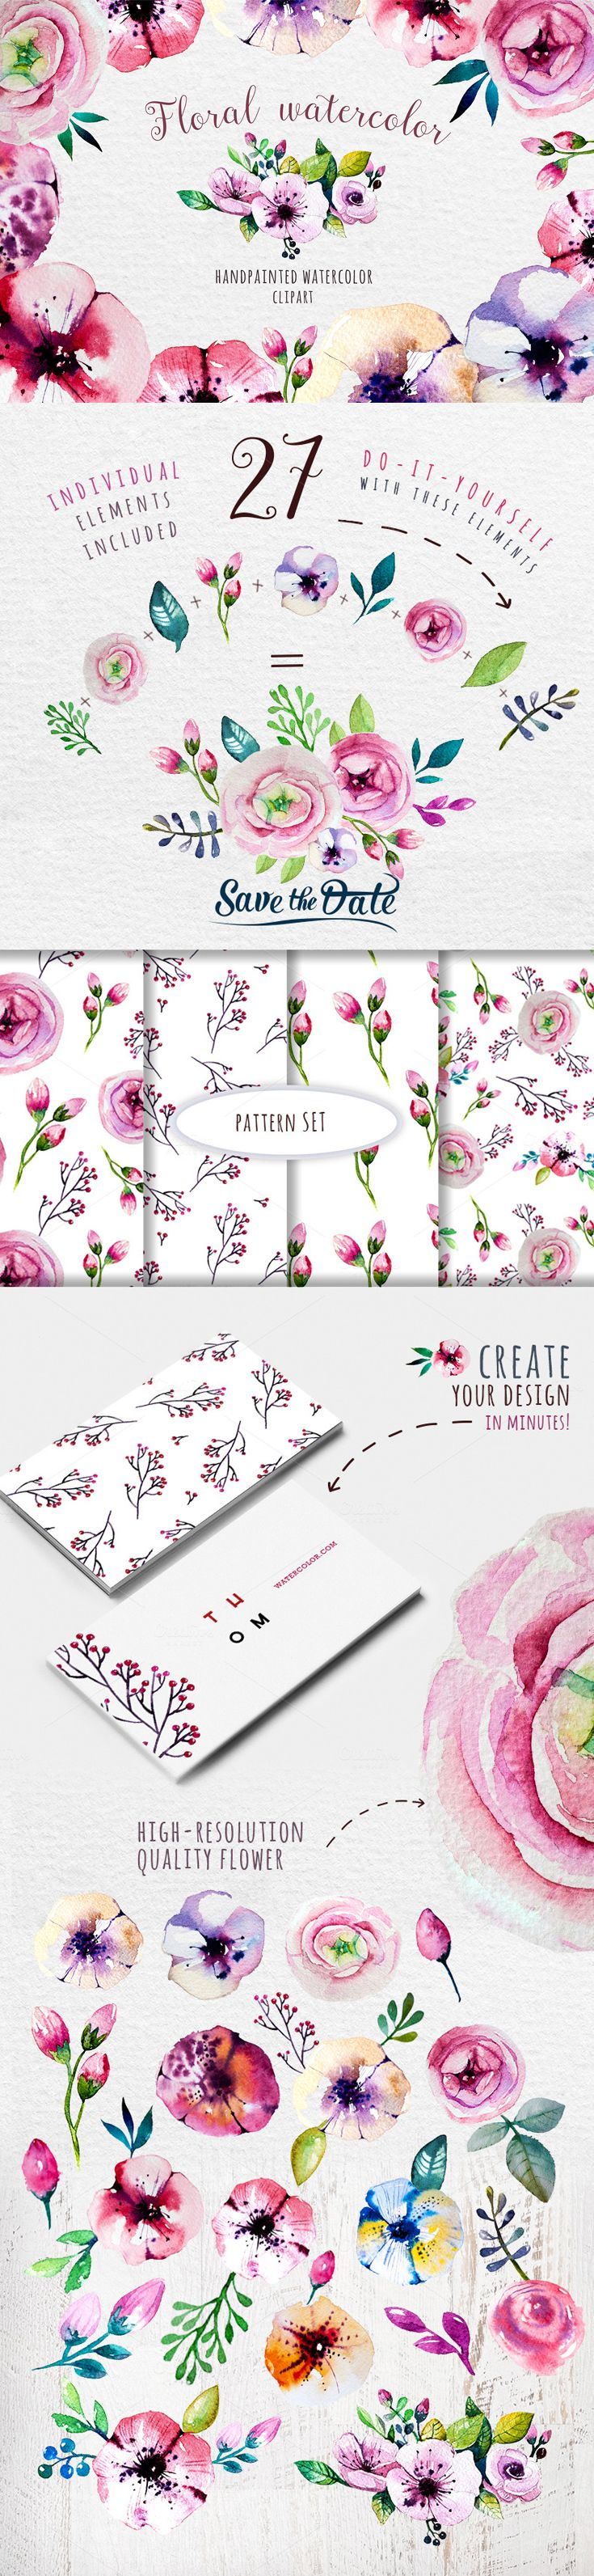 feminine clip art floral pink girly flowers hand-painted watercolor